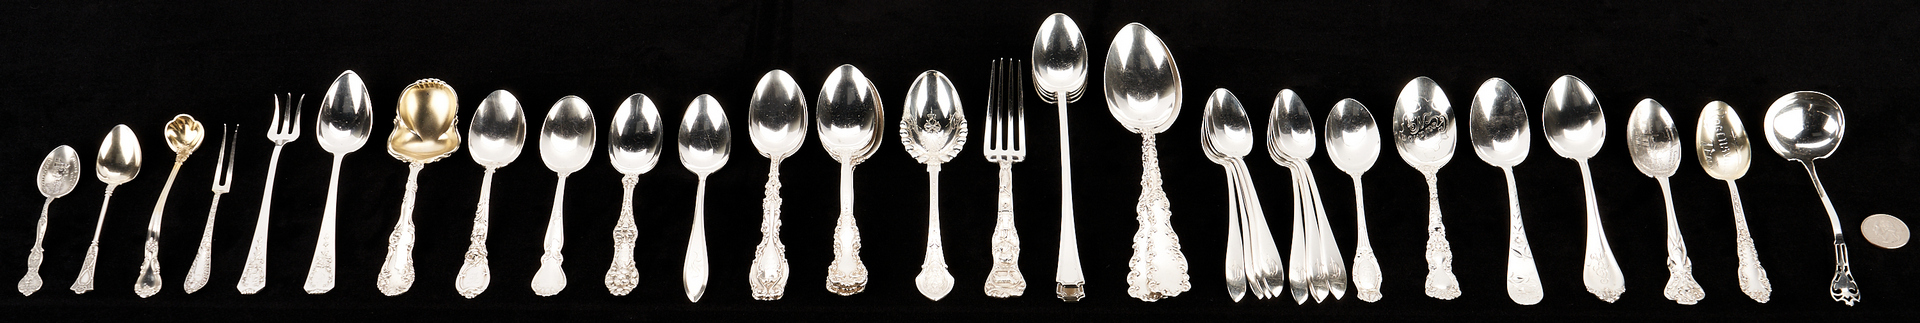 Lot 1225: 39 Sterling Silver Flatware Pieces, 40 items